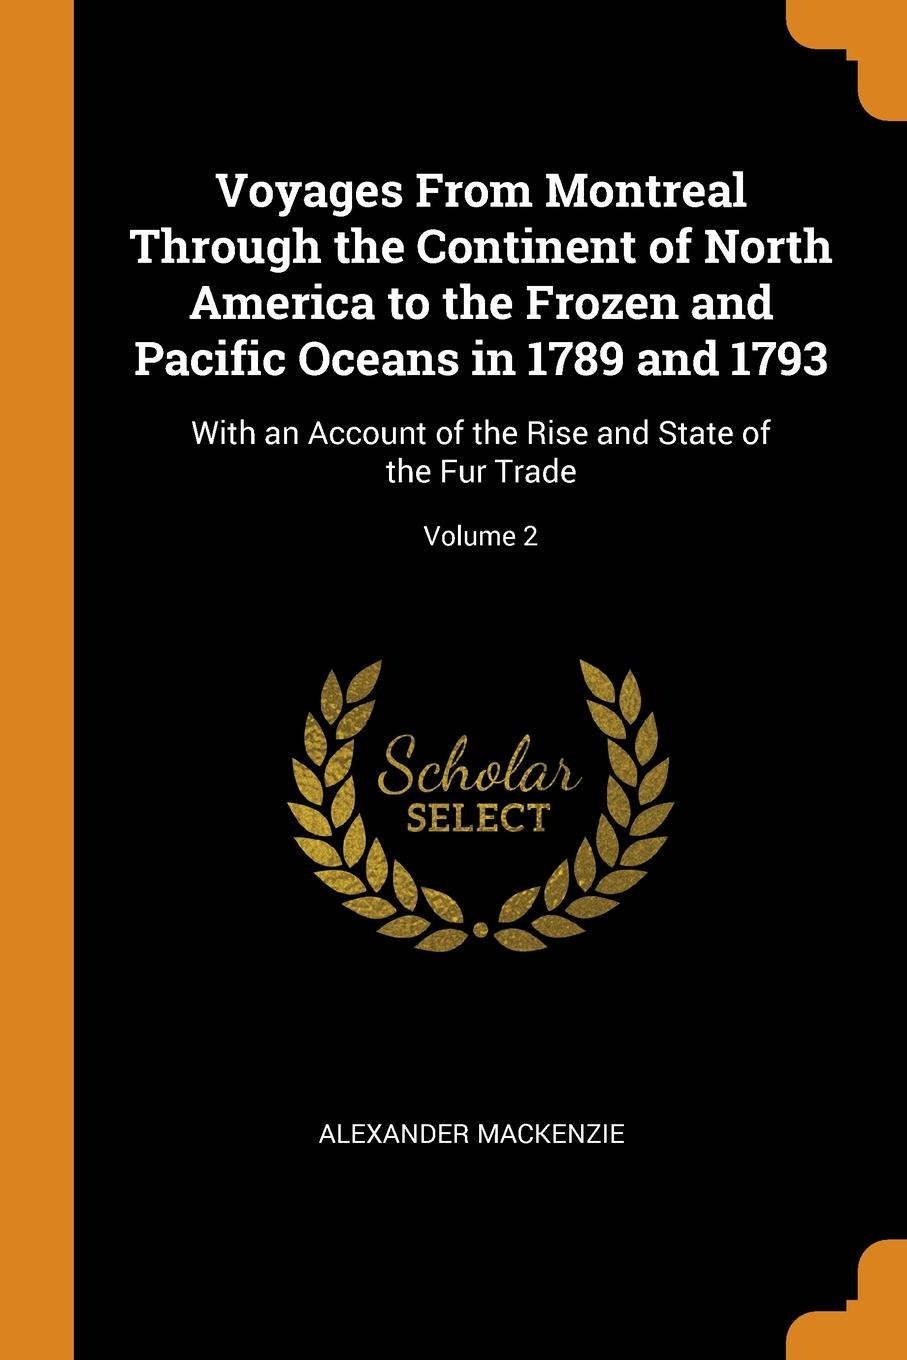 Alexander Mackenzie Voyages From Montreal Through the Continent of North America to the Frozen and Pacific Oceans in 1789 and 1793. With an Account of the Rise and State of the Fur Trade; Volume 2 alexander mackenzie voyages from montreal through the continent of north america to the frozen and pacific oceans in 1789 and 1793